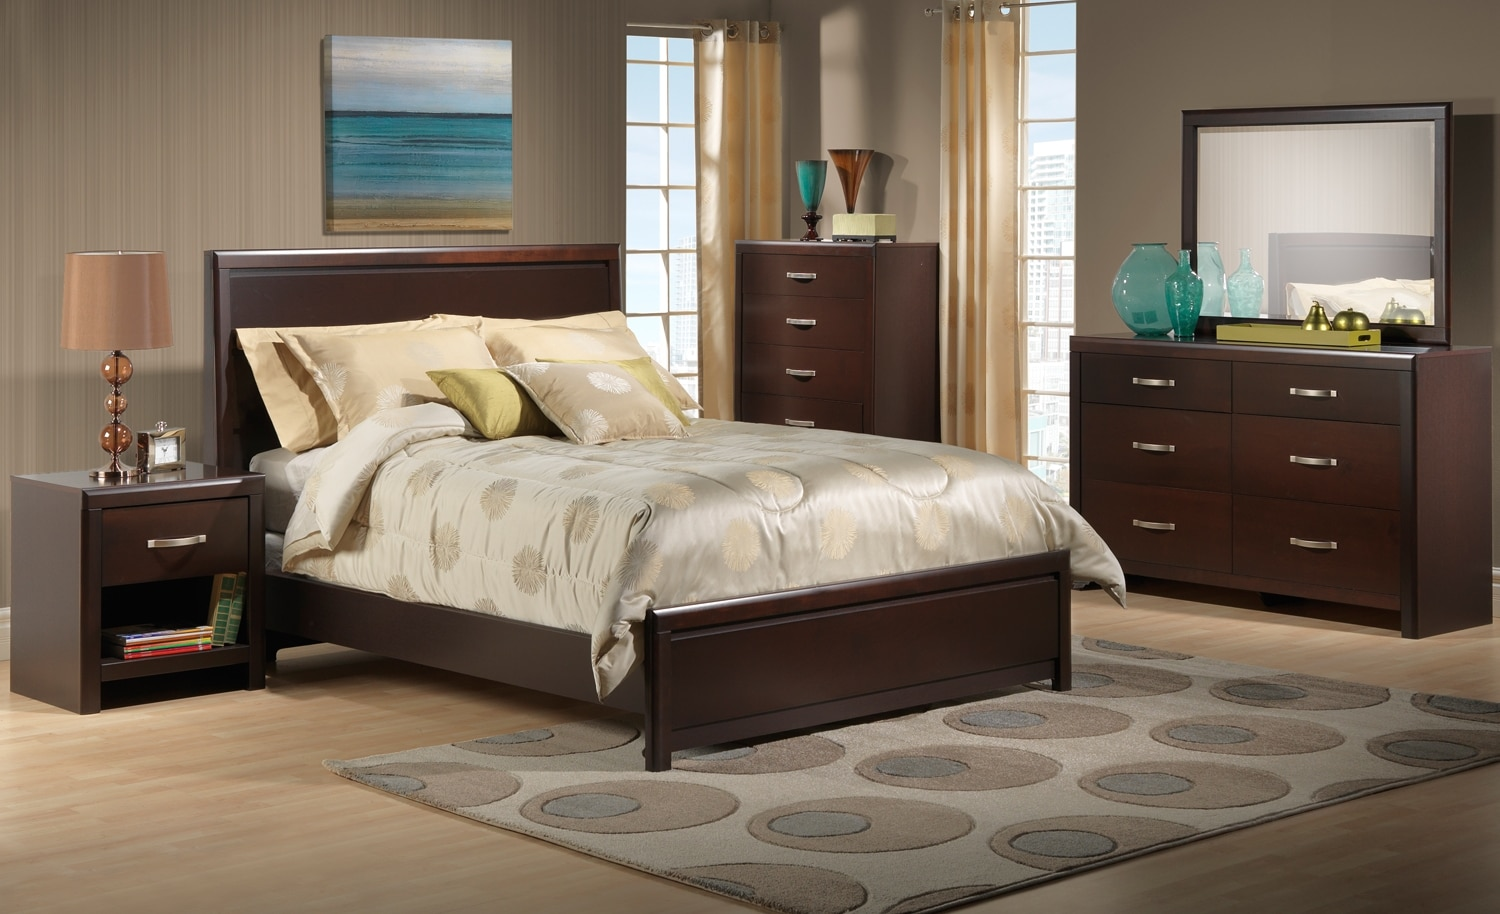 Leons Bedroom Sets Furniture Durham Collection Style Ideas